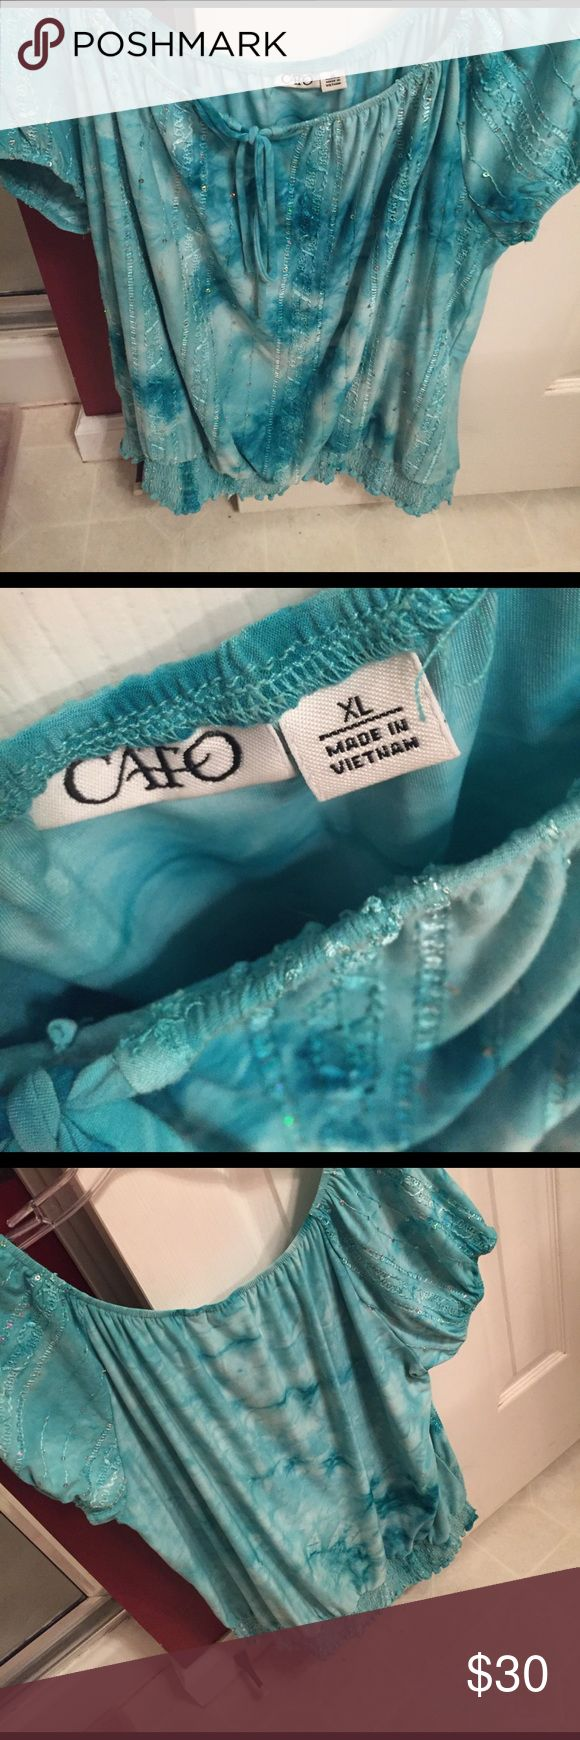 Turquoise top Really cute top - like new/only worn once Cato Tops Blouses